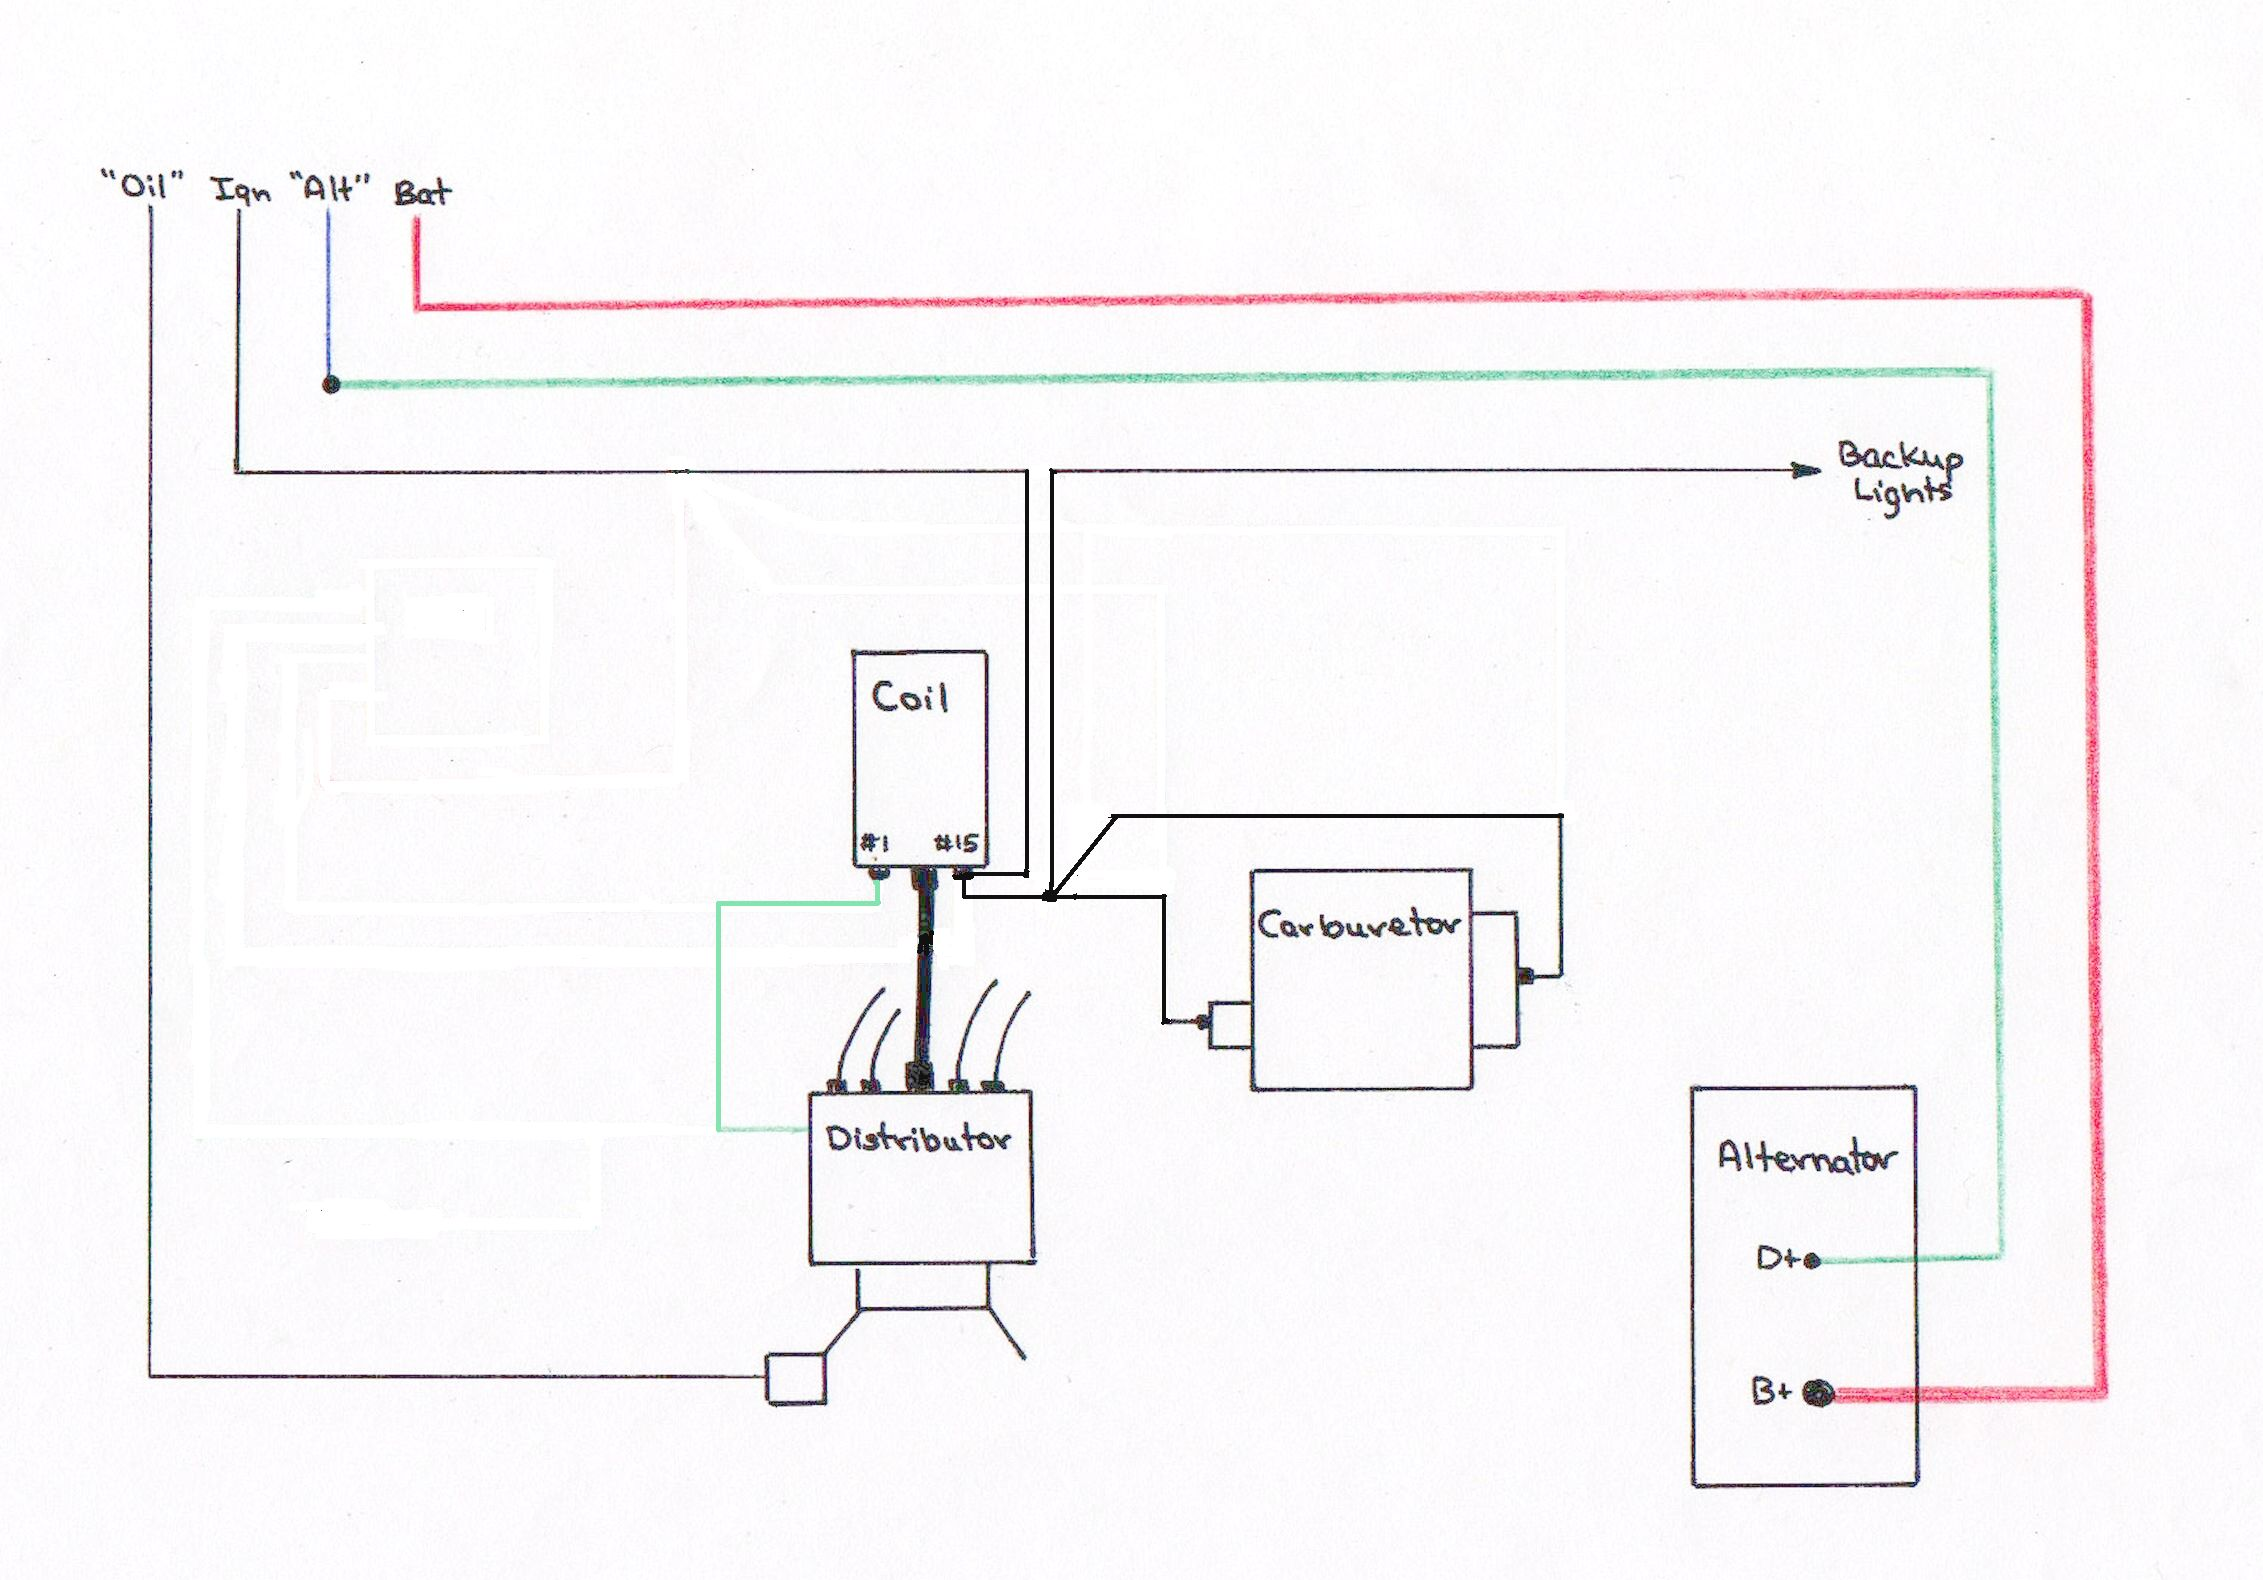 handdrawn_schematic alternator wiring vw alternator conversion wiring diagram at bayanpartner.co